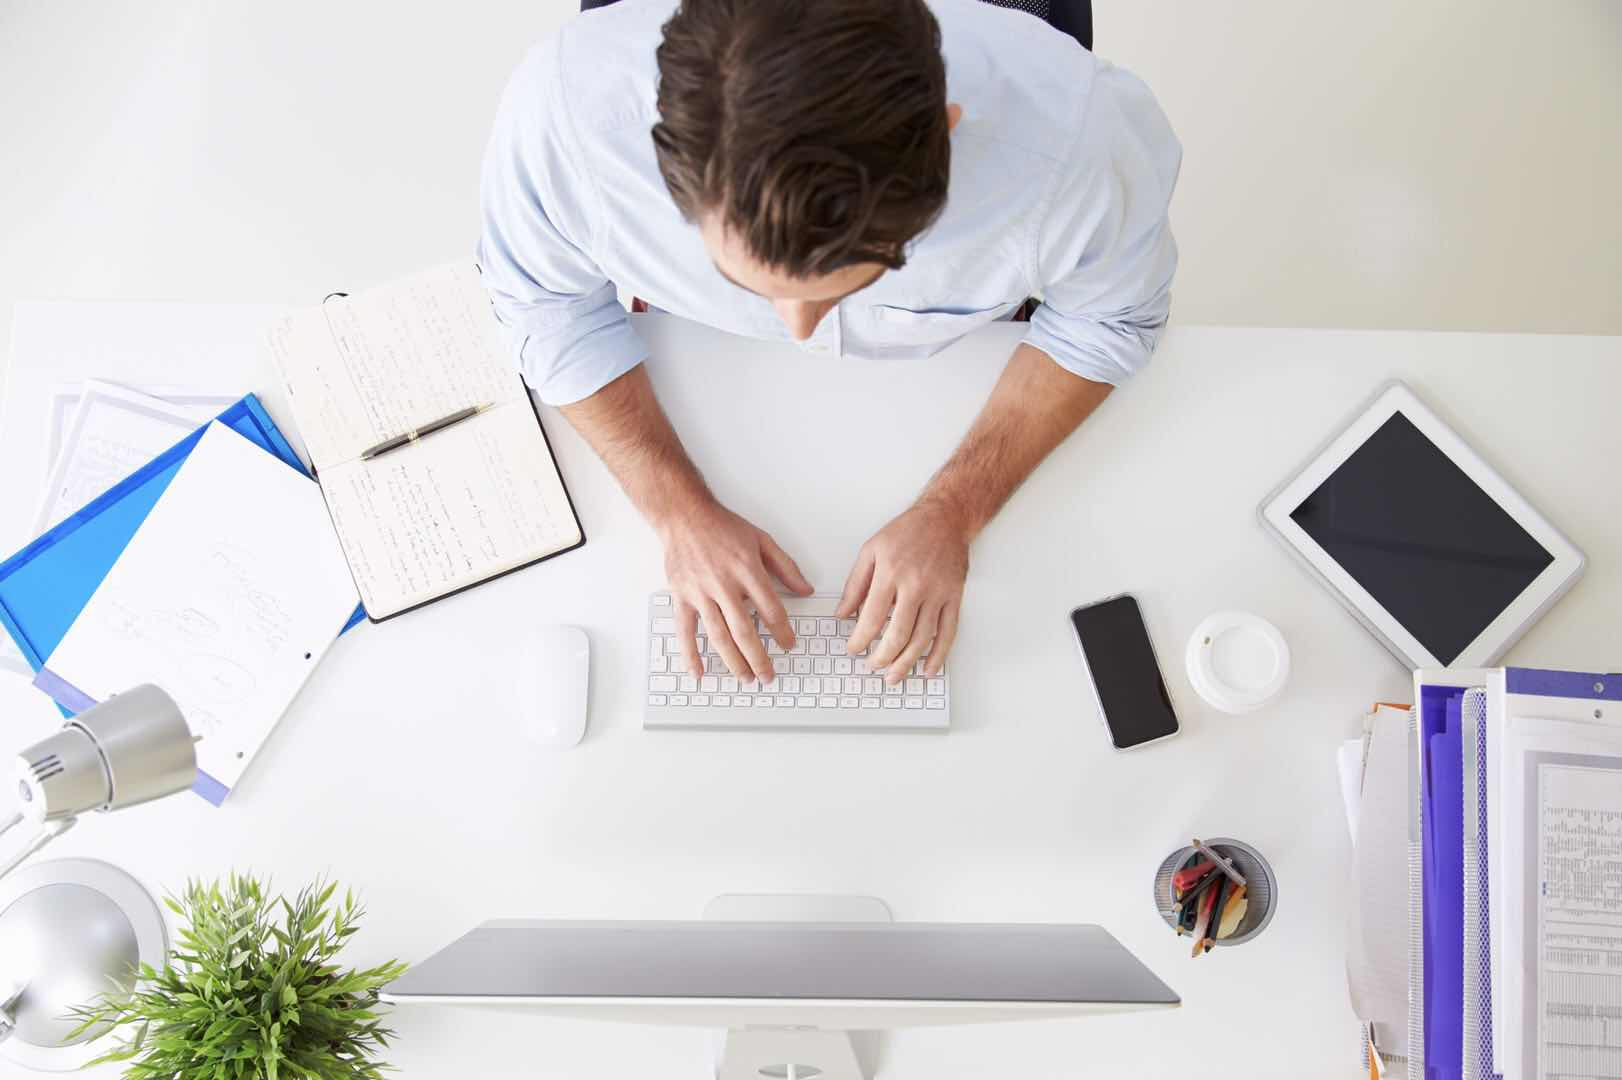 WFH Strategies for Operating Remotely During the Lockdown